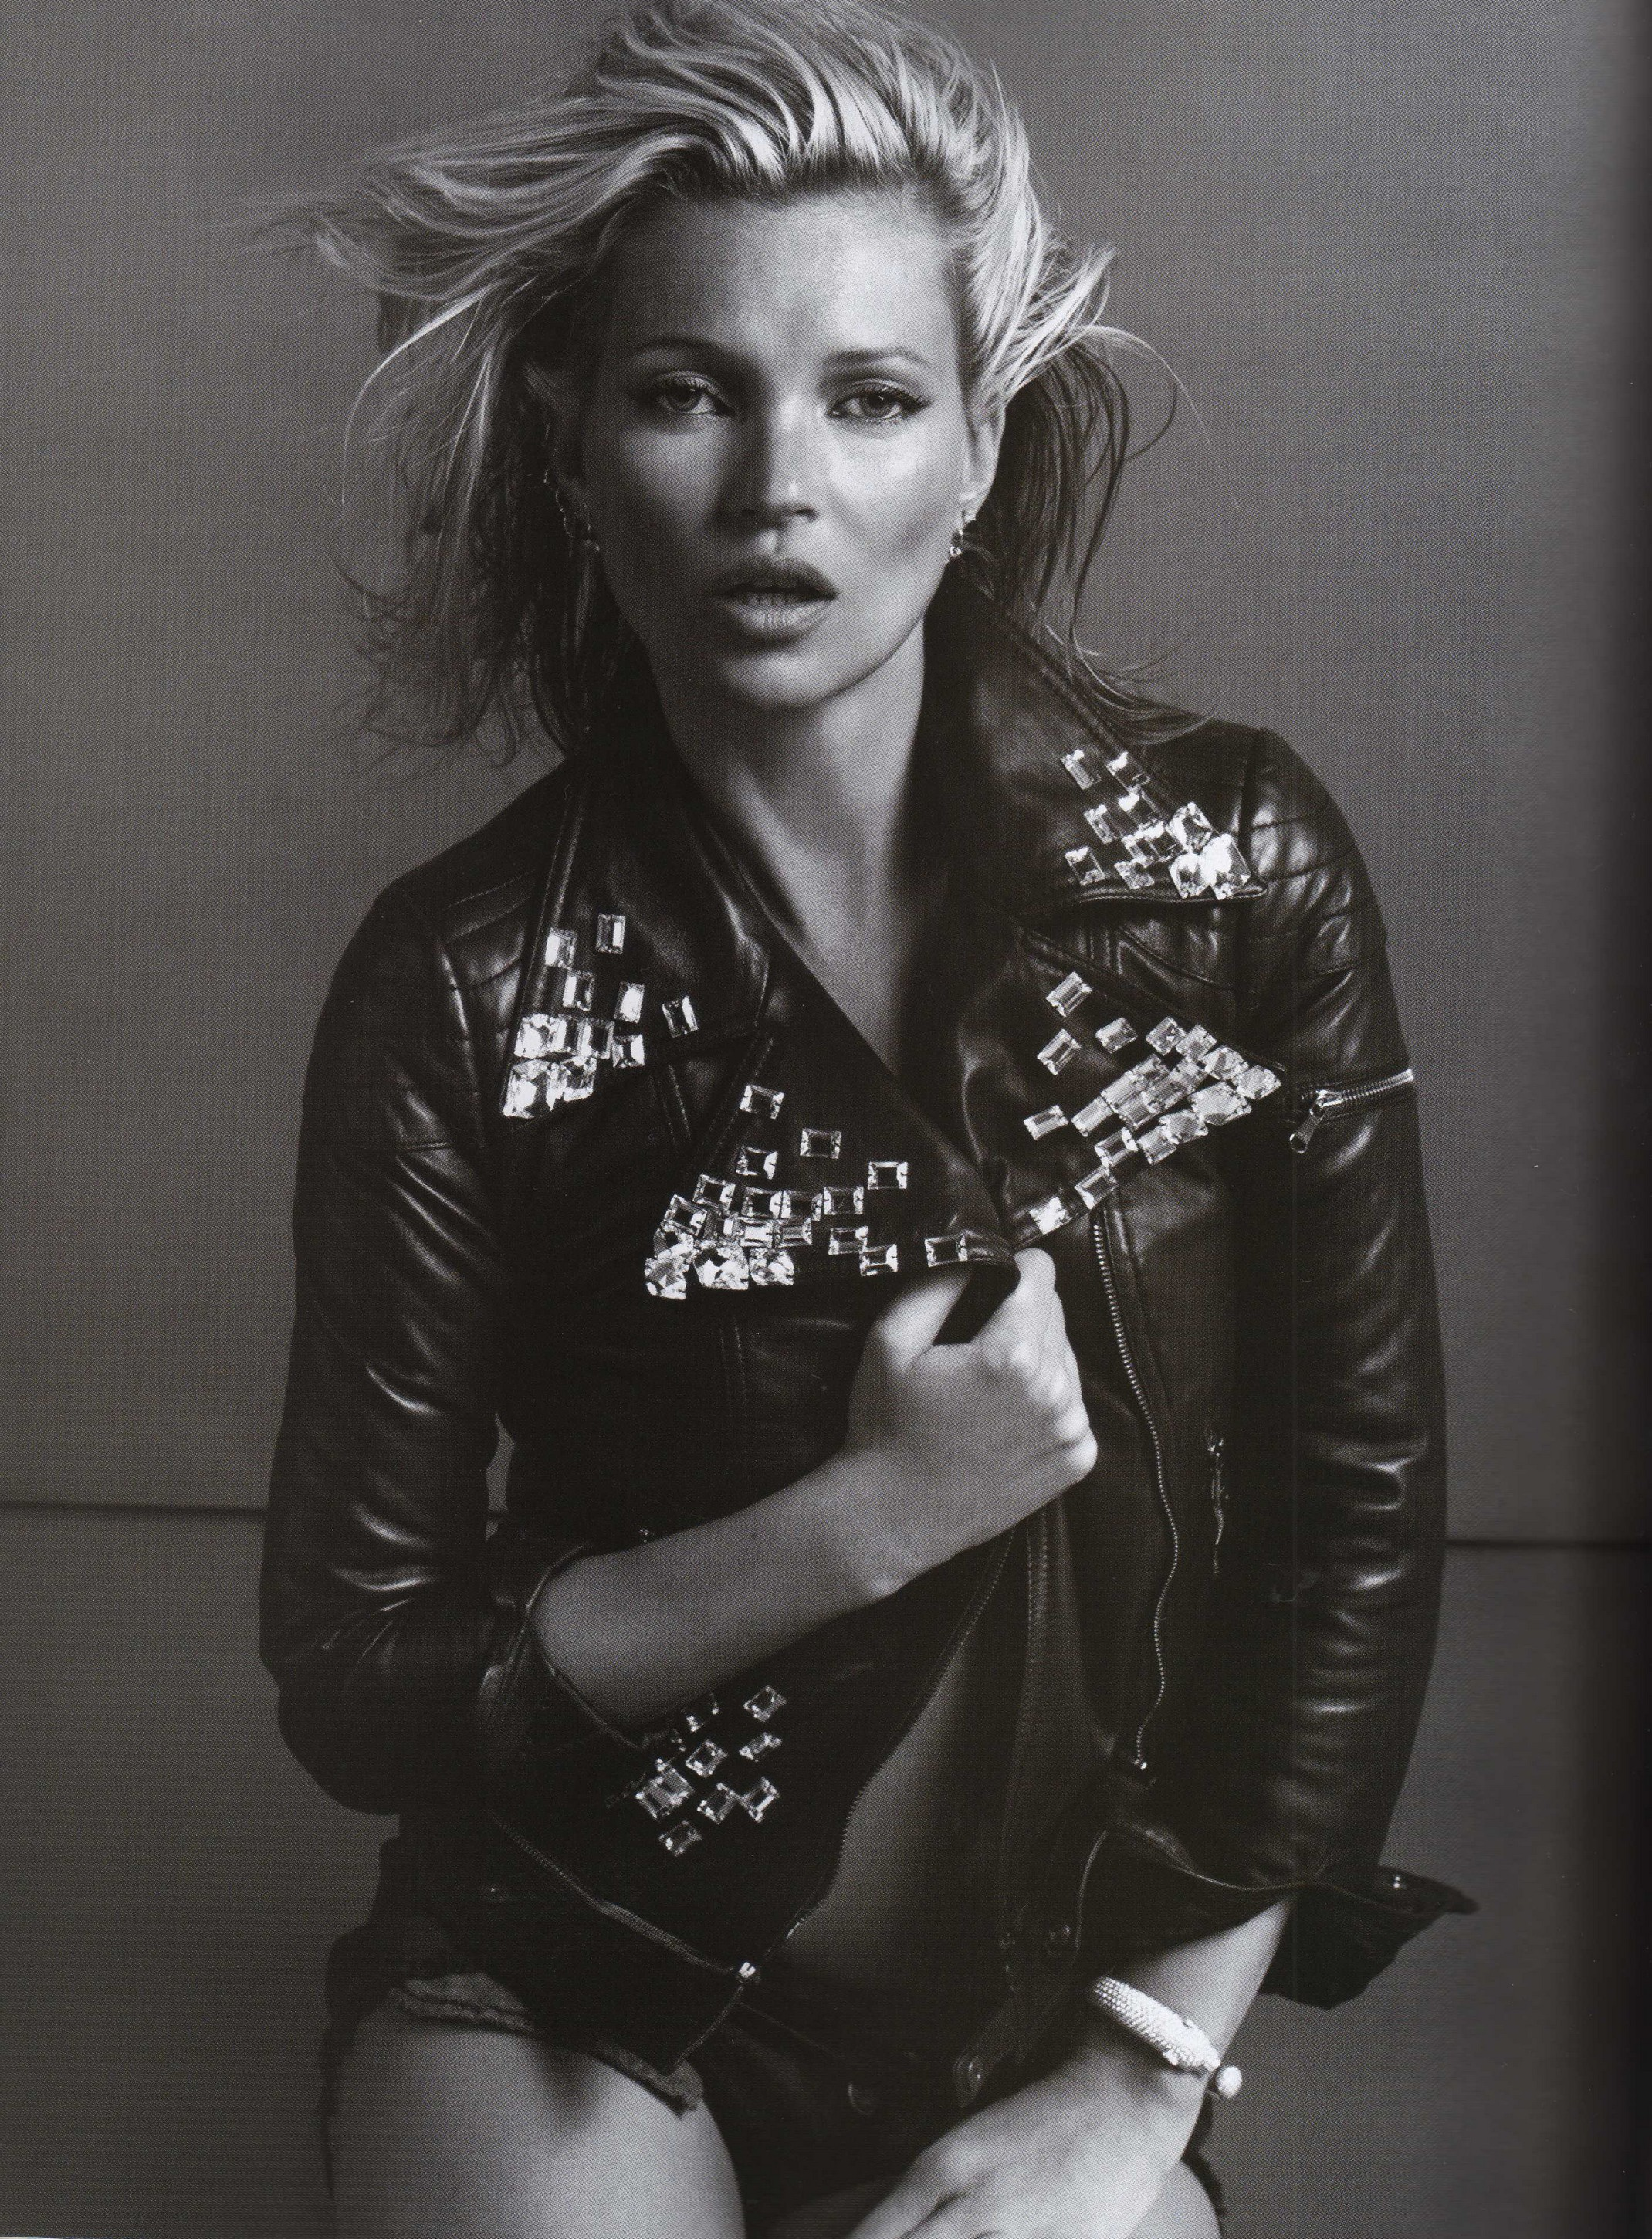 Kate Moss Is The Queen Of Cool On 37th Vogue Uk Cover: Vogue Paris: Kate Moss